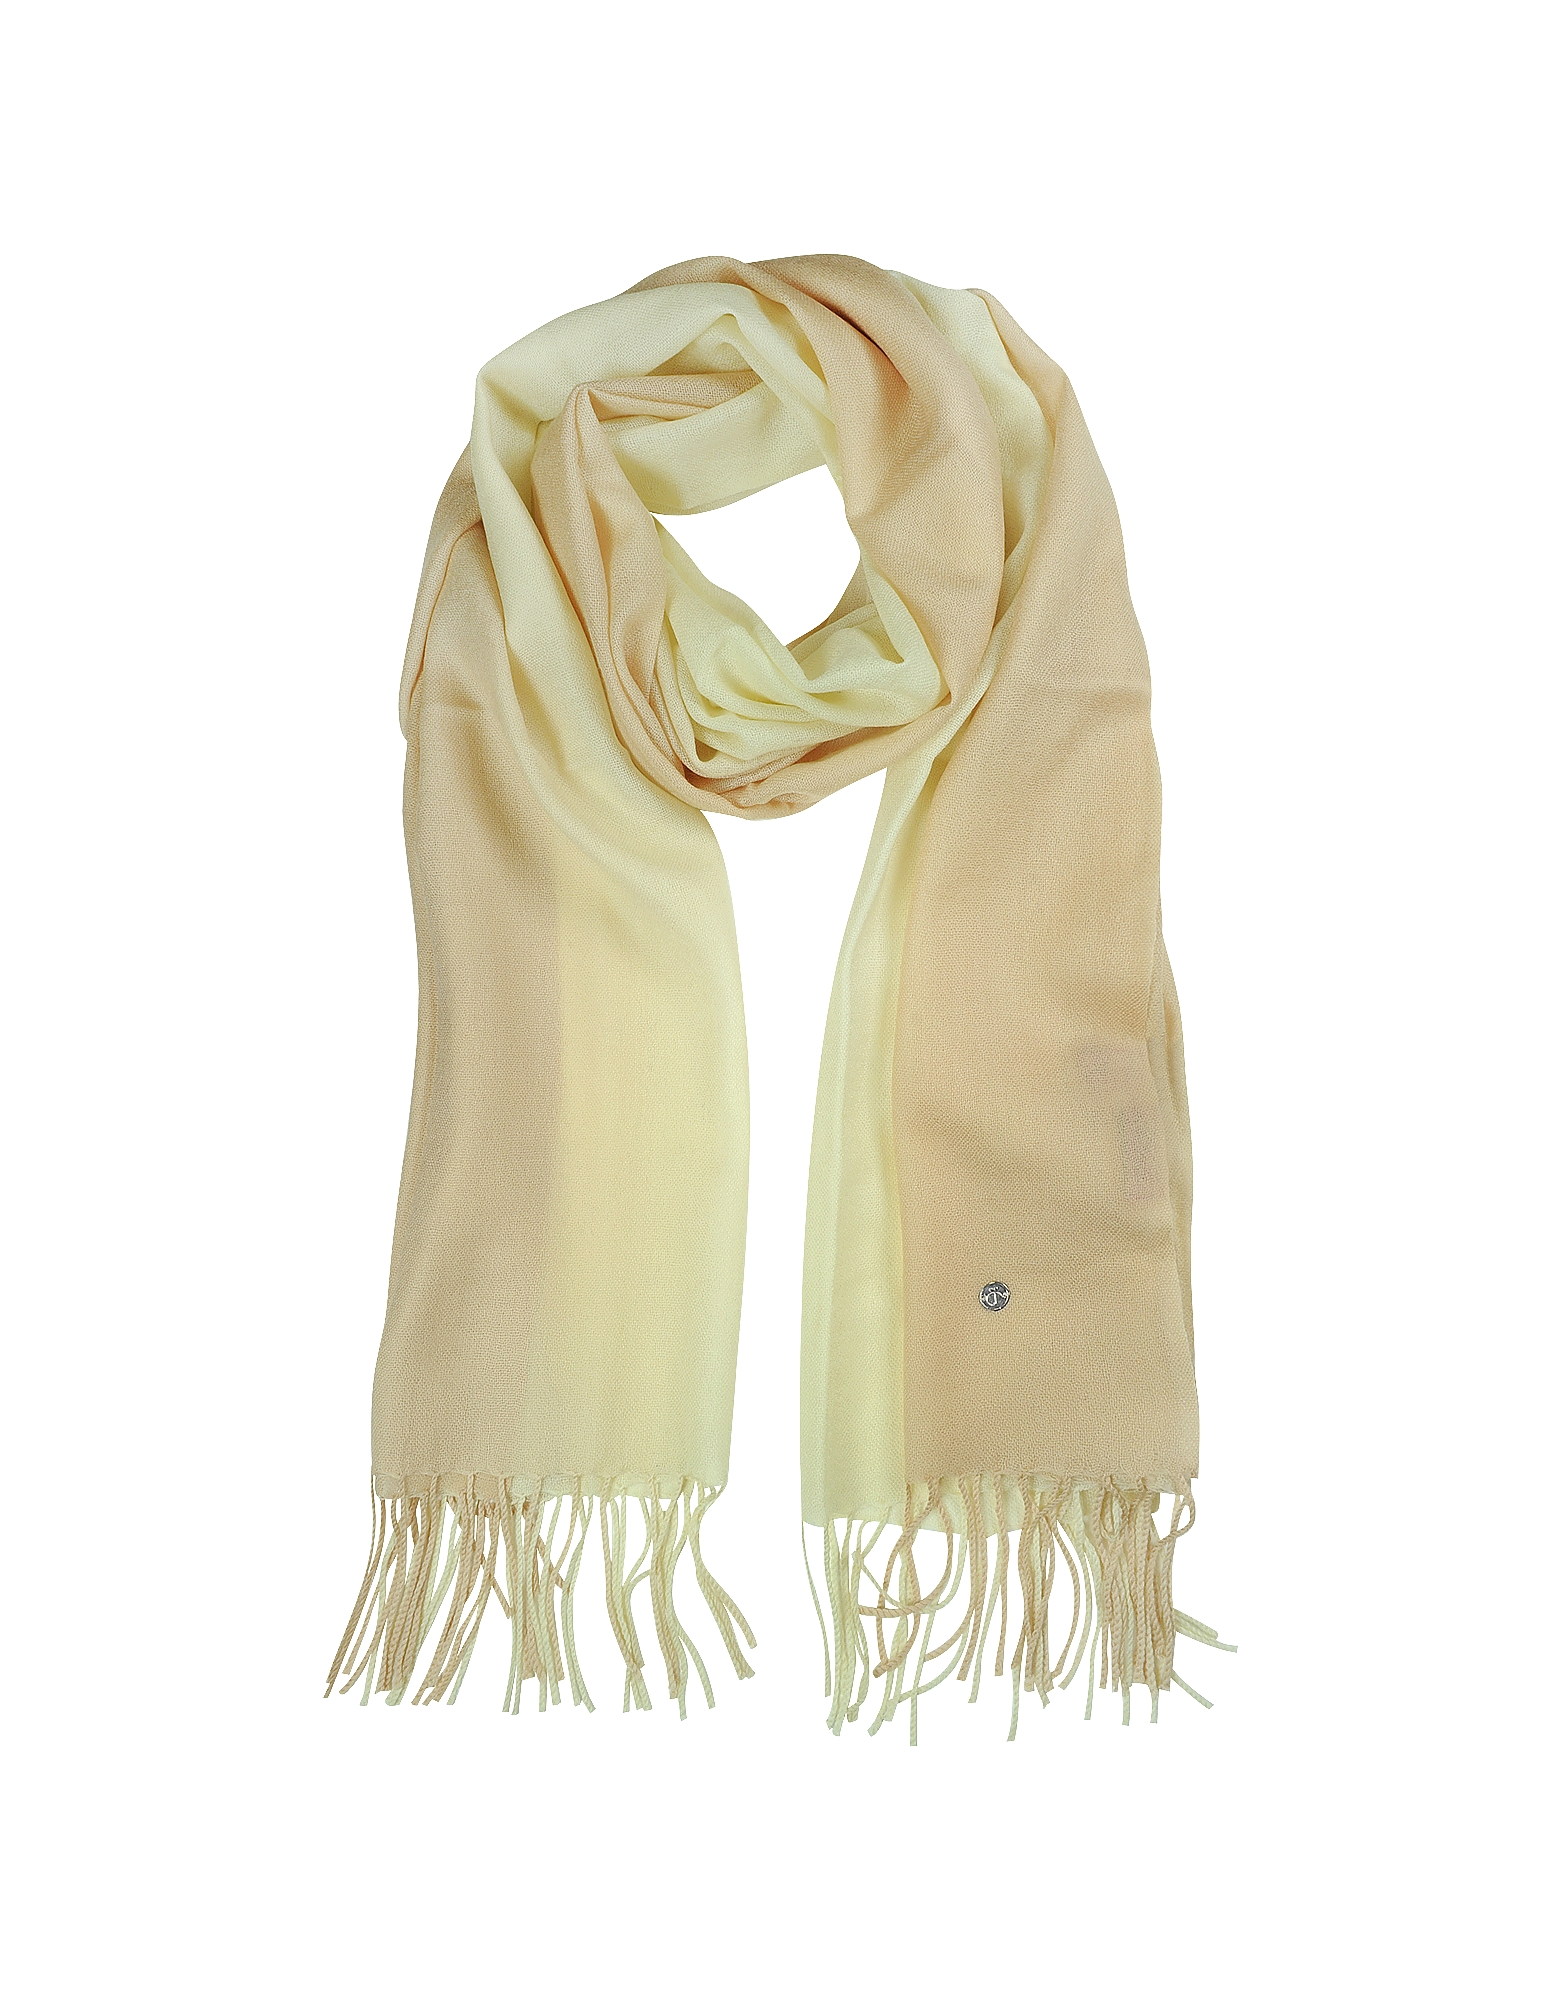 Mila Schon Long Scarves, Gradient Beige/Cream Wool and Cashmere Stole